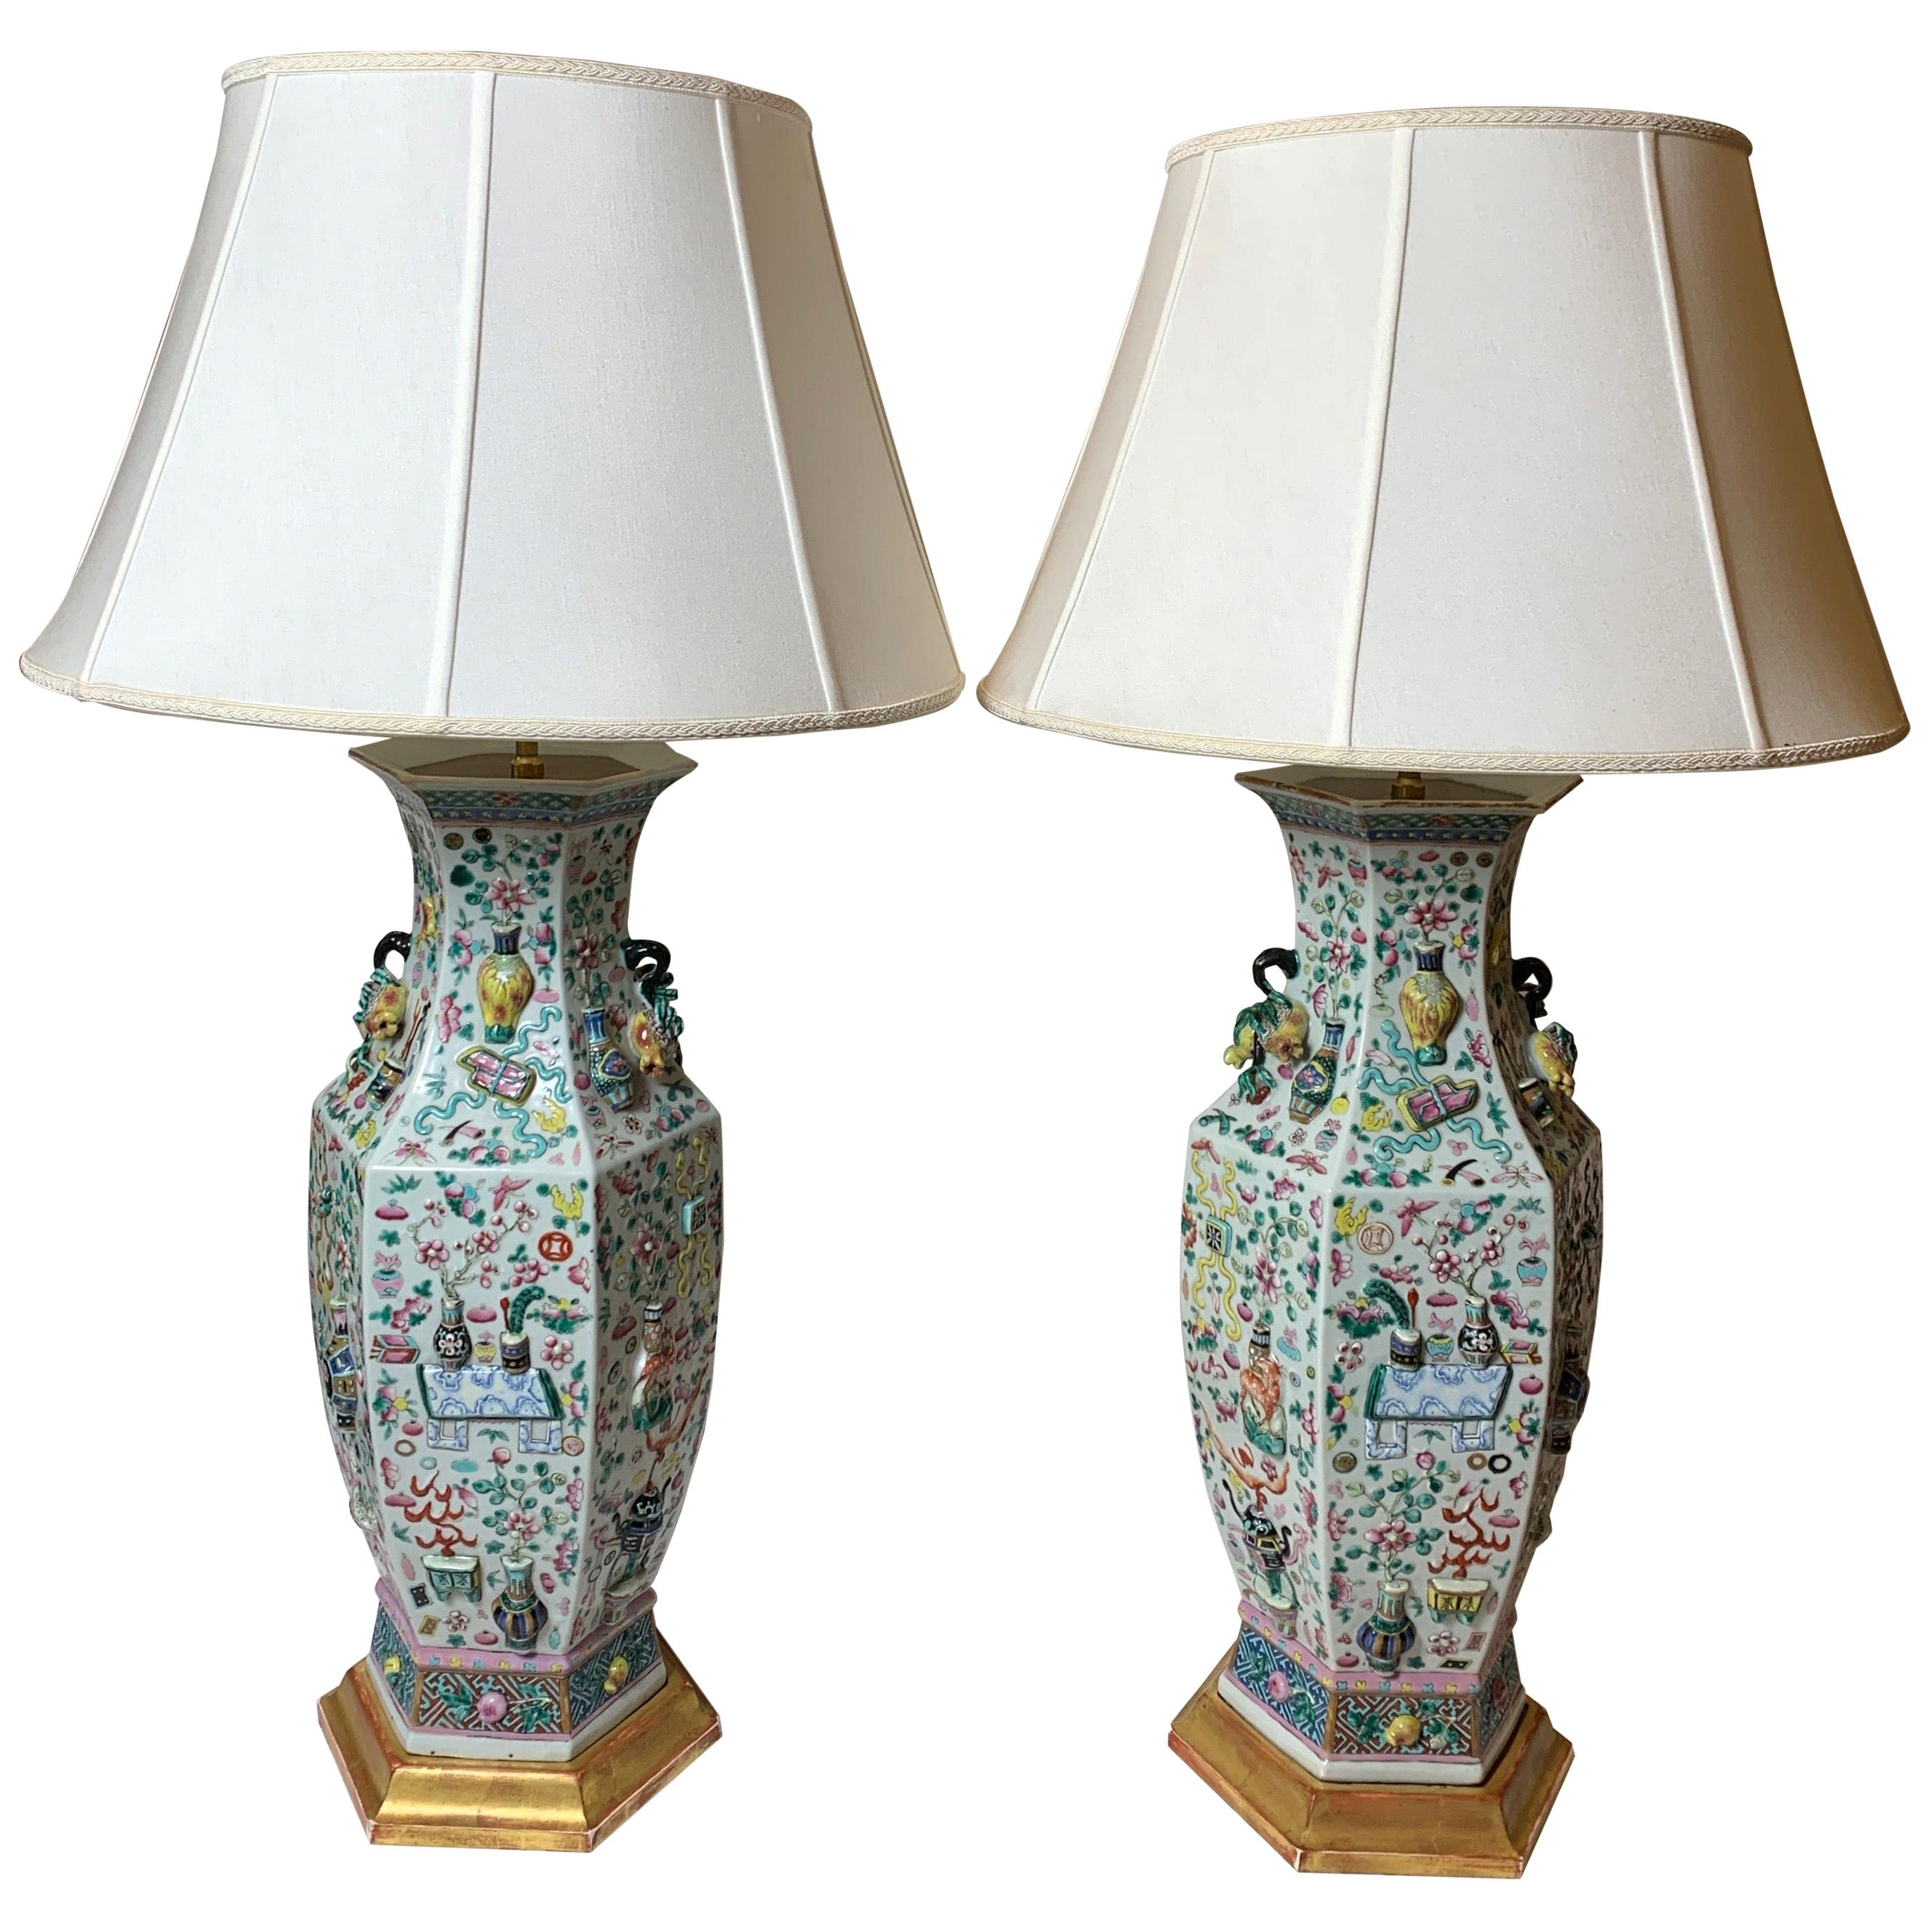 Large Pair of 1820s Chinese Export Porcelain Lamps